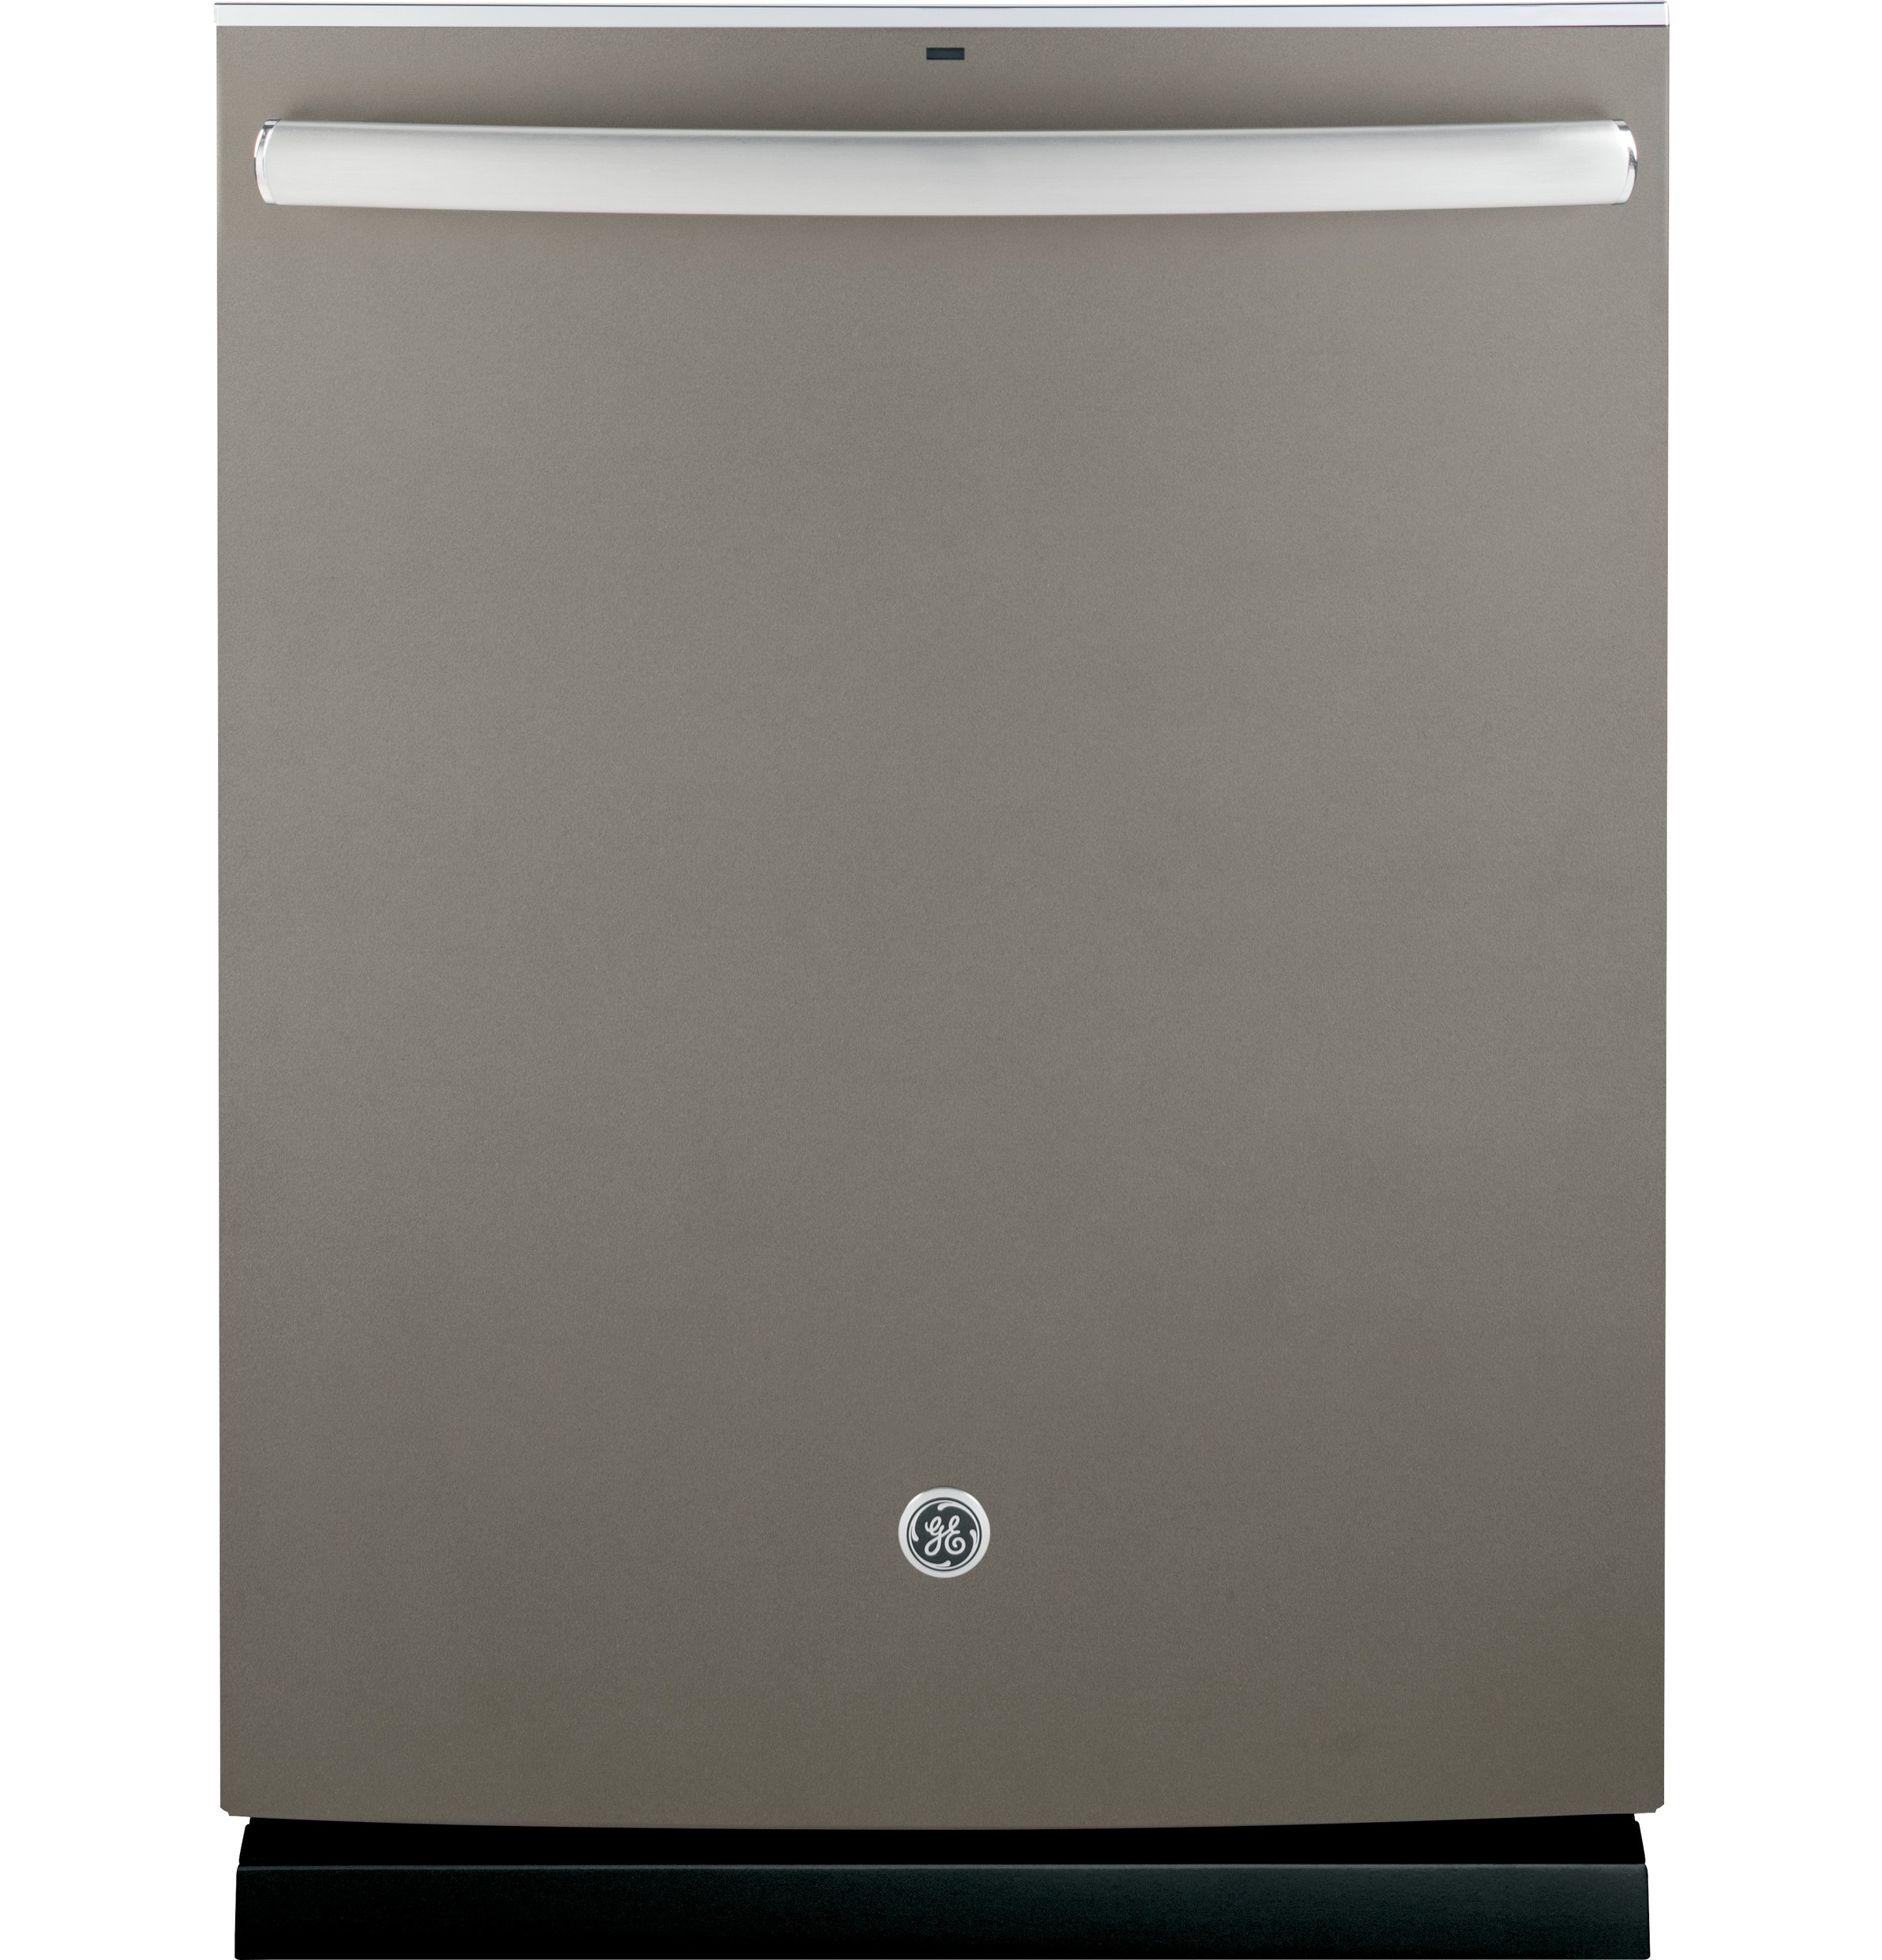 General Electric Dishwasher Troubleshooting Gear Stainless Steel Interior Dishwasher With Hidden Controls